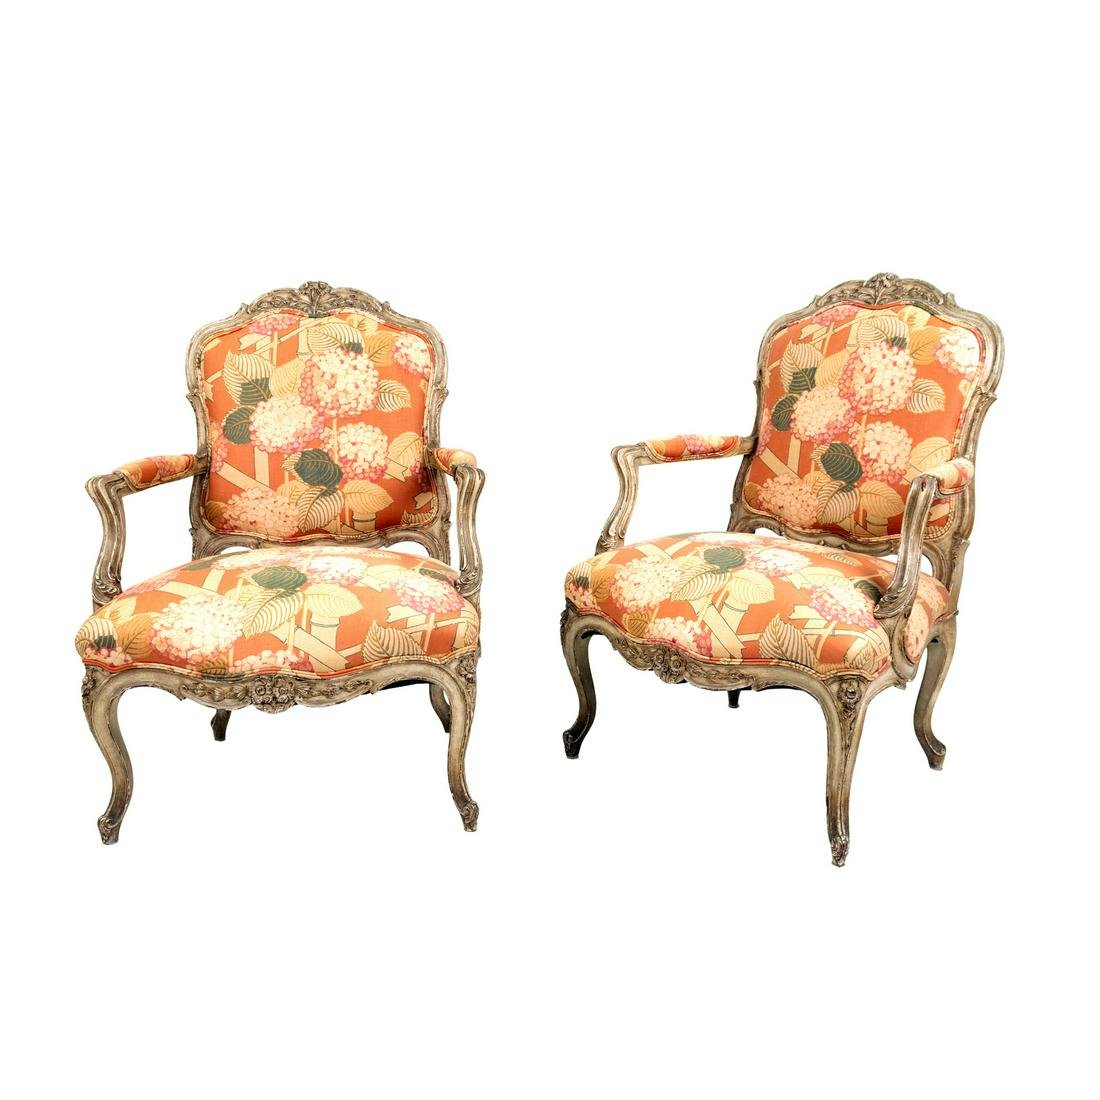 A Pair of Louis XV Style Carved and Painted Fauteuils